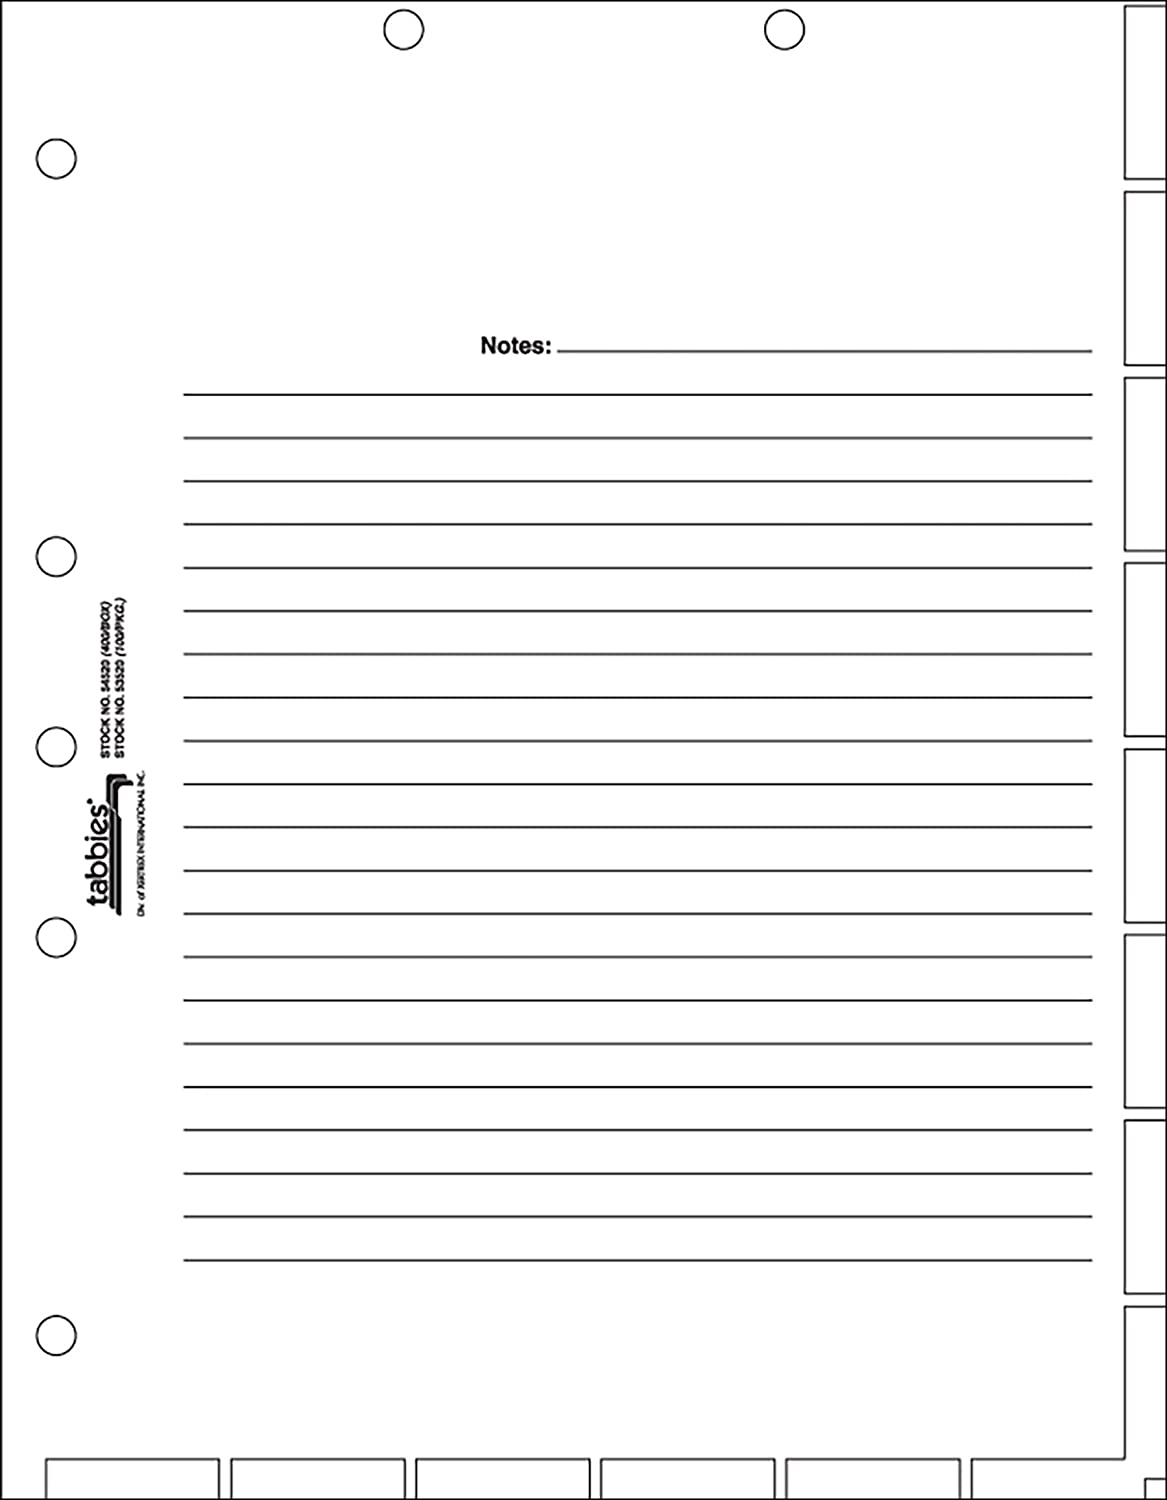 """tabbies Medical Chart Divider Sheets, 7 Hole Punched for 3-Ring Binders, 11""""H x 8-1/2""""W, White, 400 Sheets/Pack (54520) (TAB54520)"""